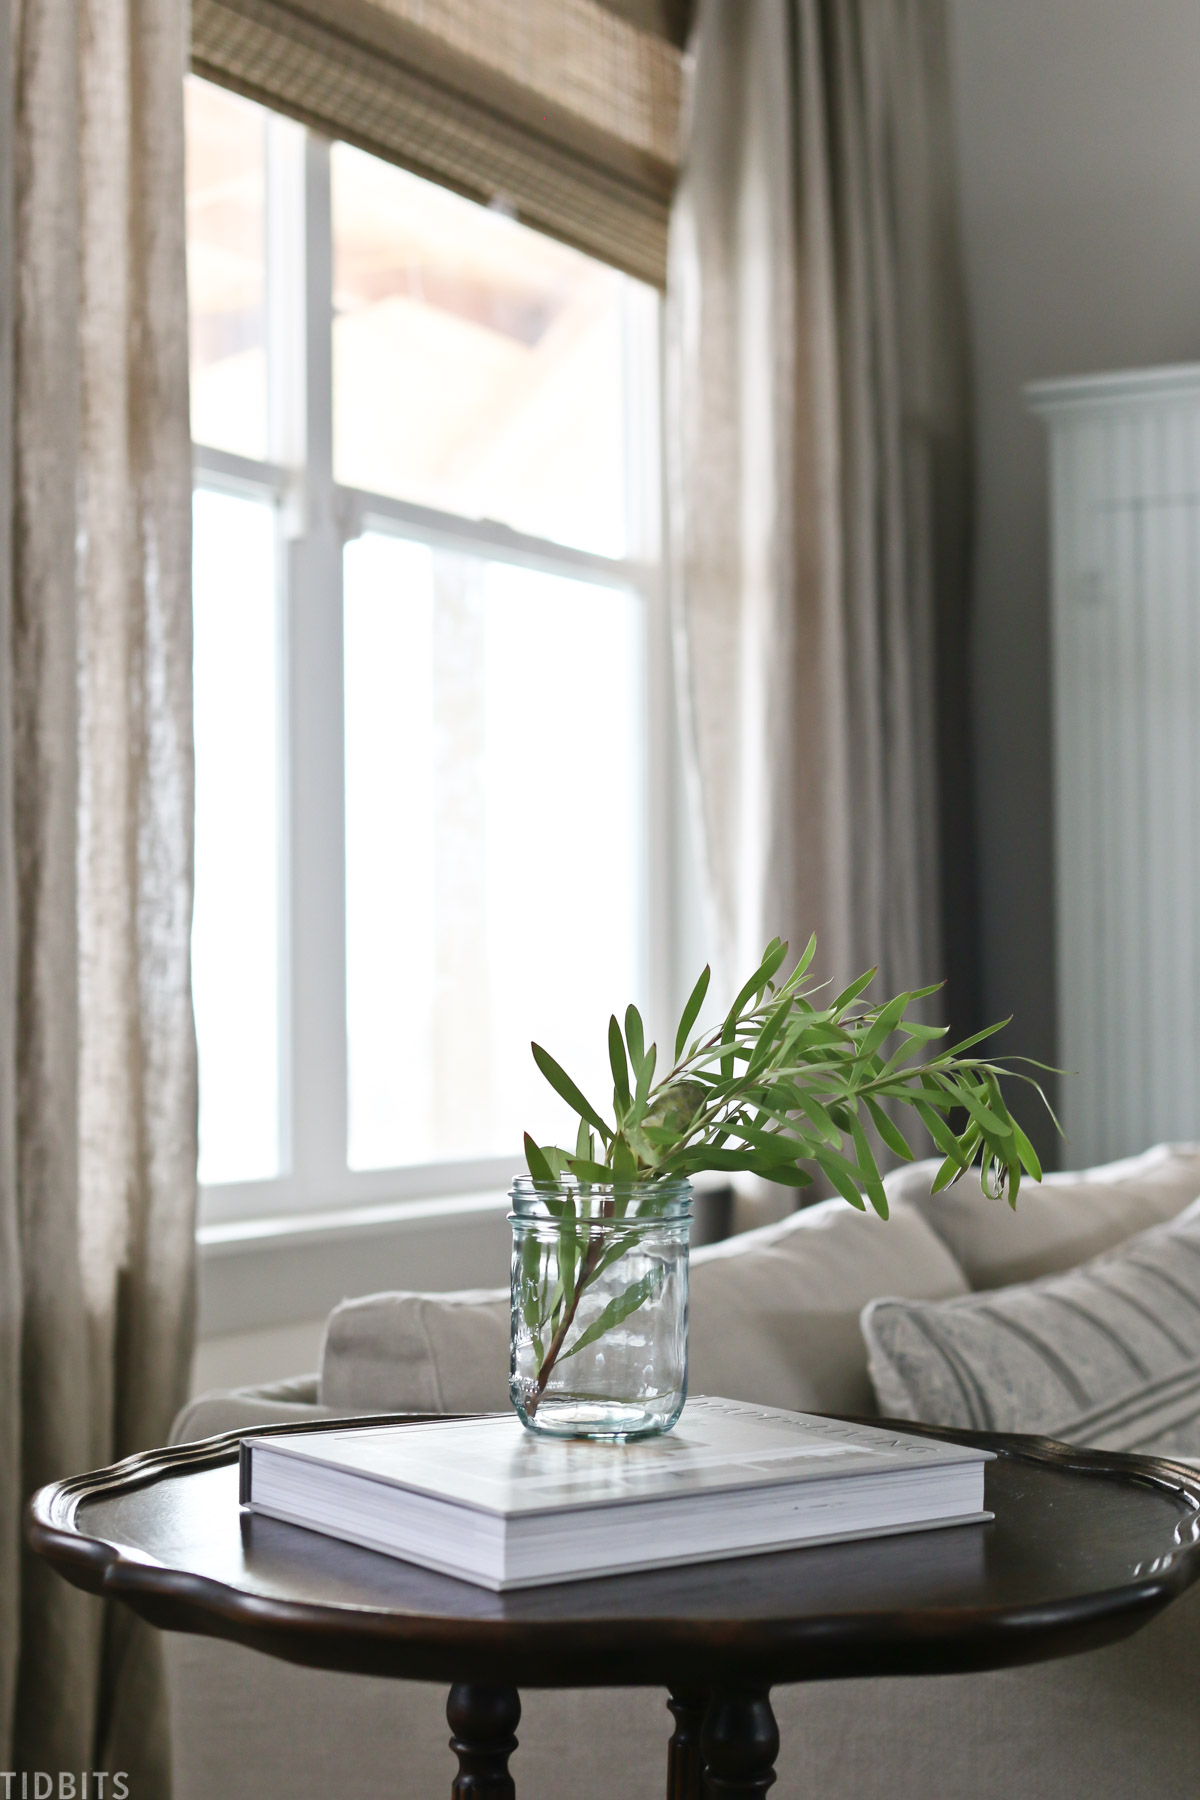 side table with book and plant that's placed next to couch in front of living room with natural light coming in